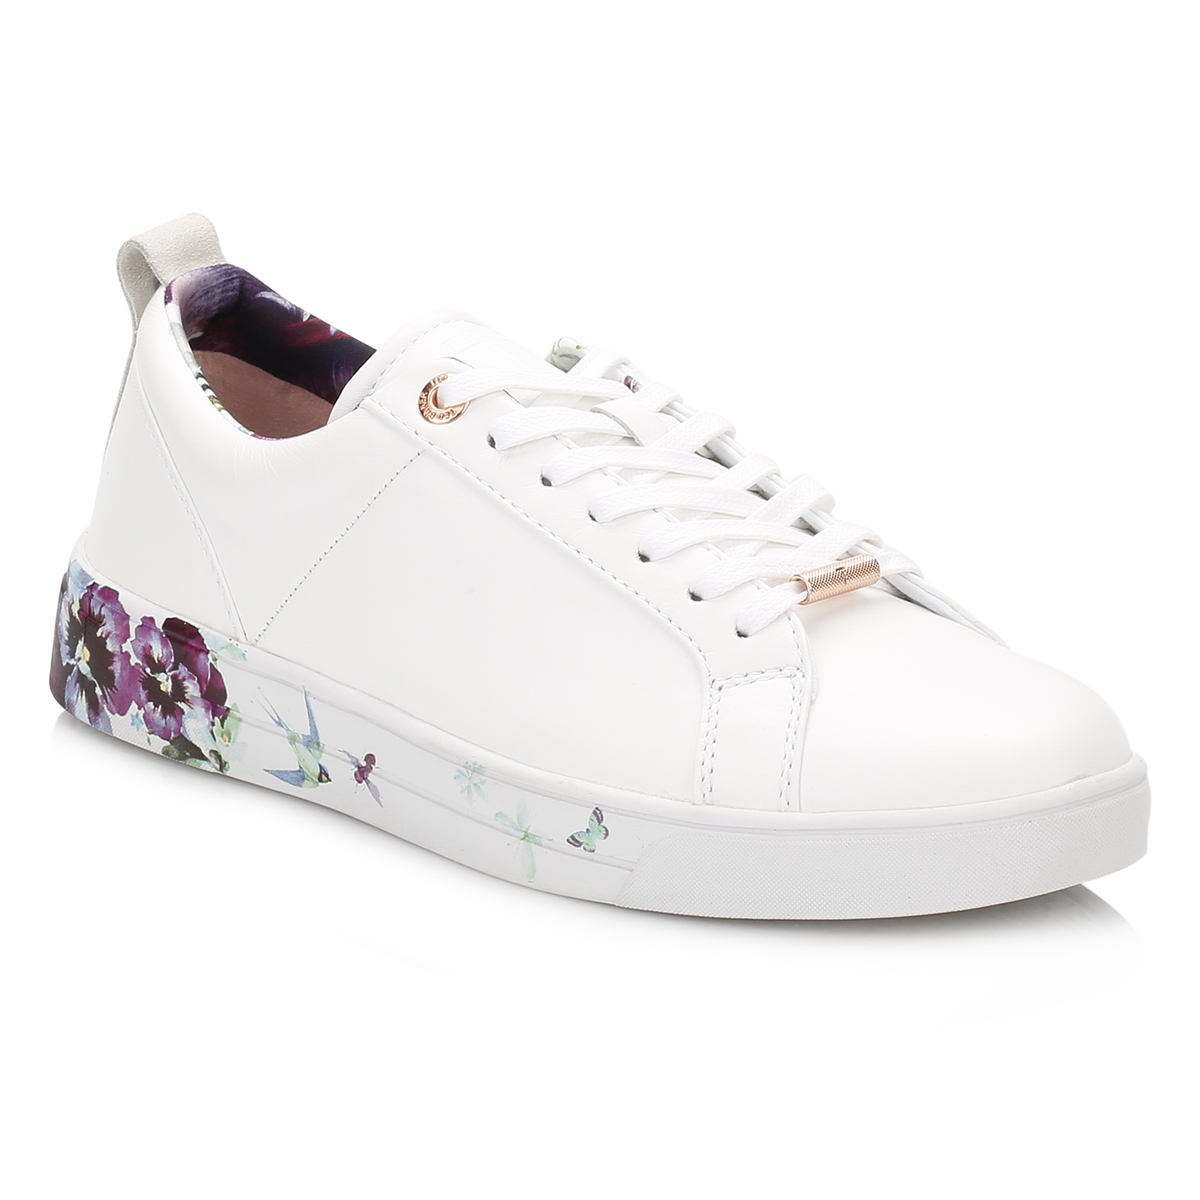 7a474f8f8 Ted Baker Womens White Barrica Trainers, Floral Sport Casual Leather ...